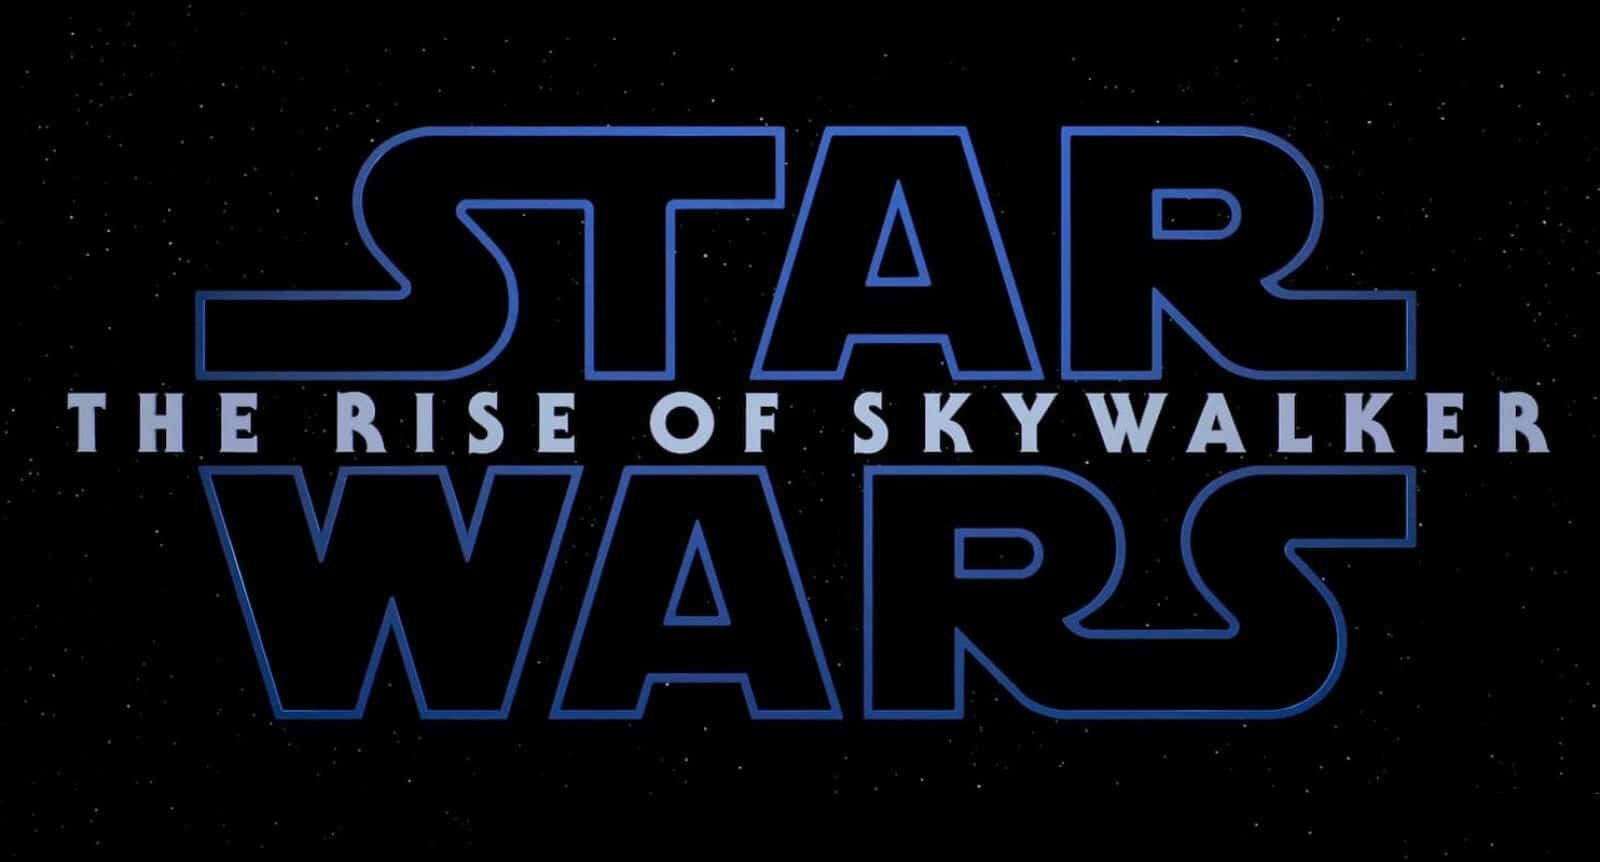 Star Wars The Rise of Skywalker Soundtrack logo featured